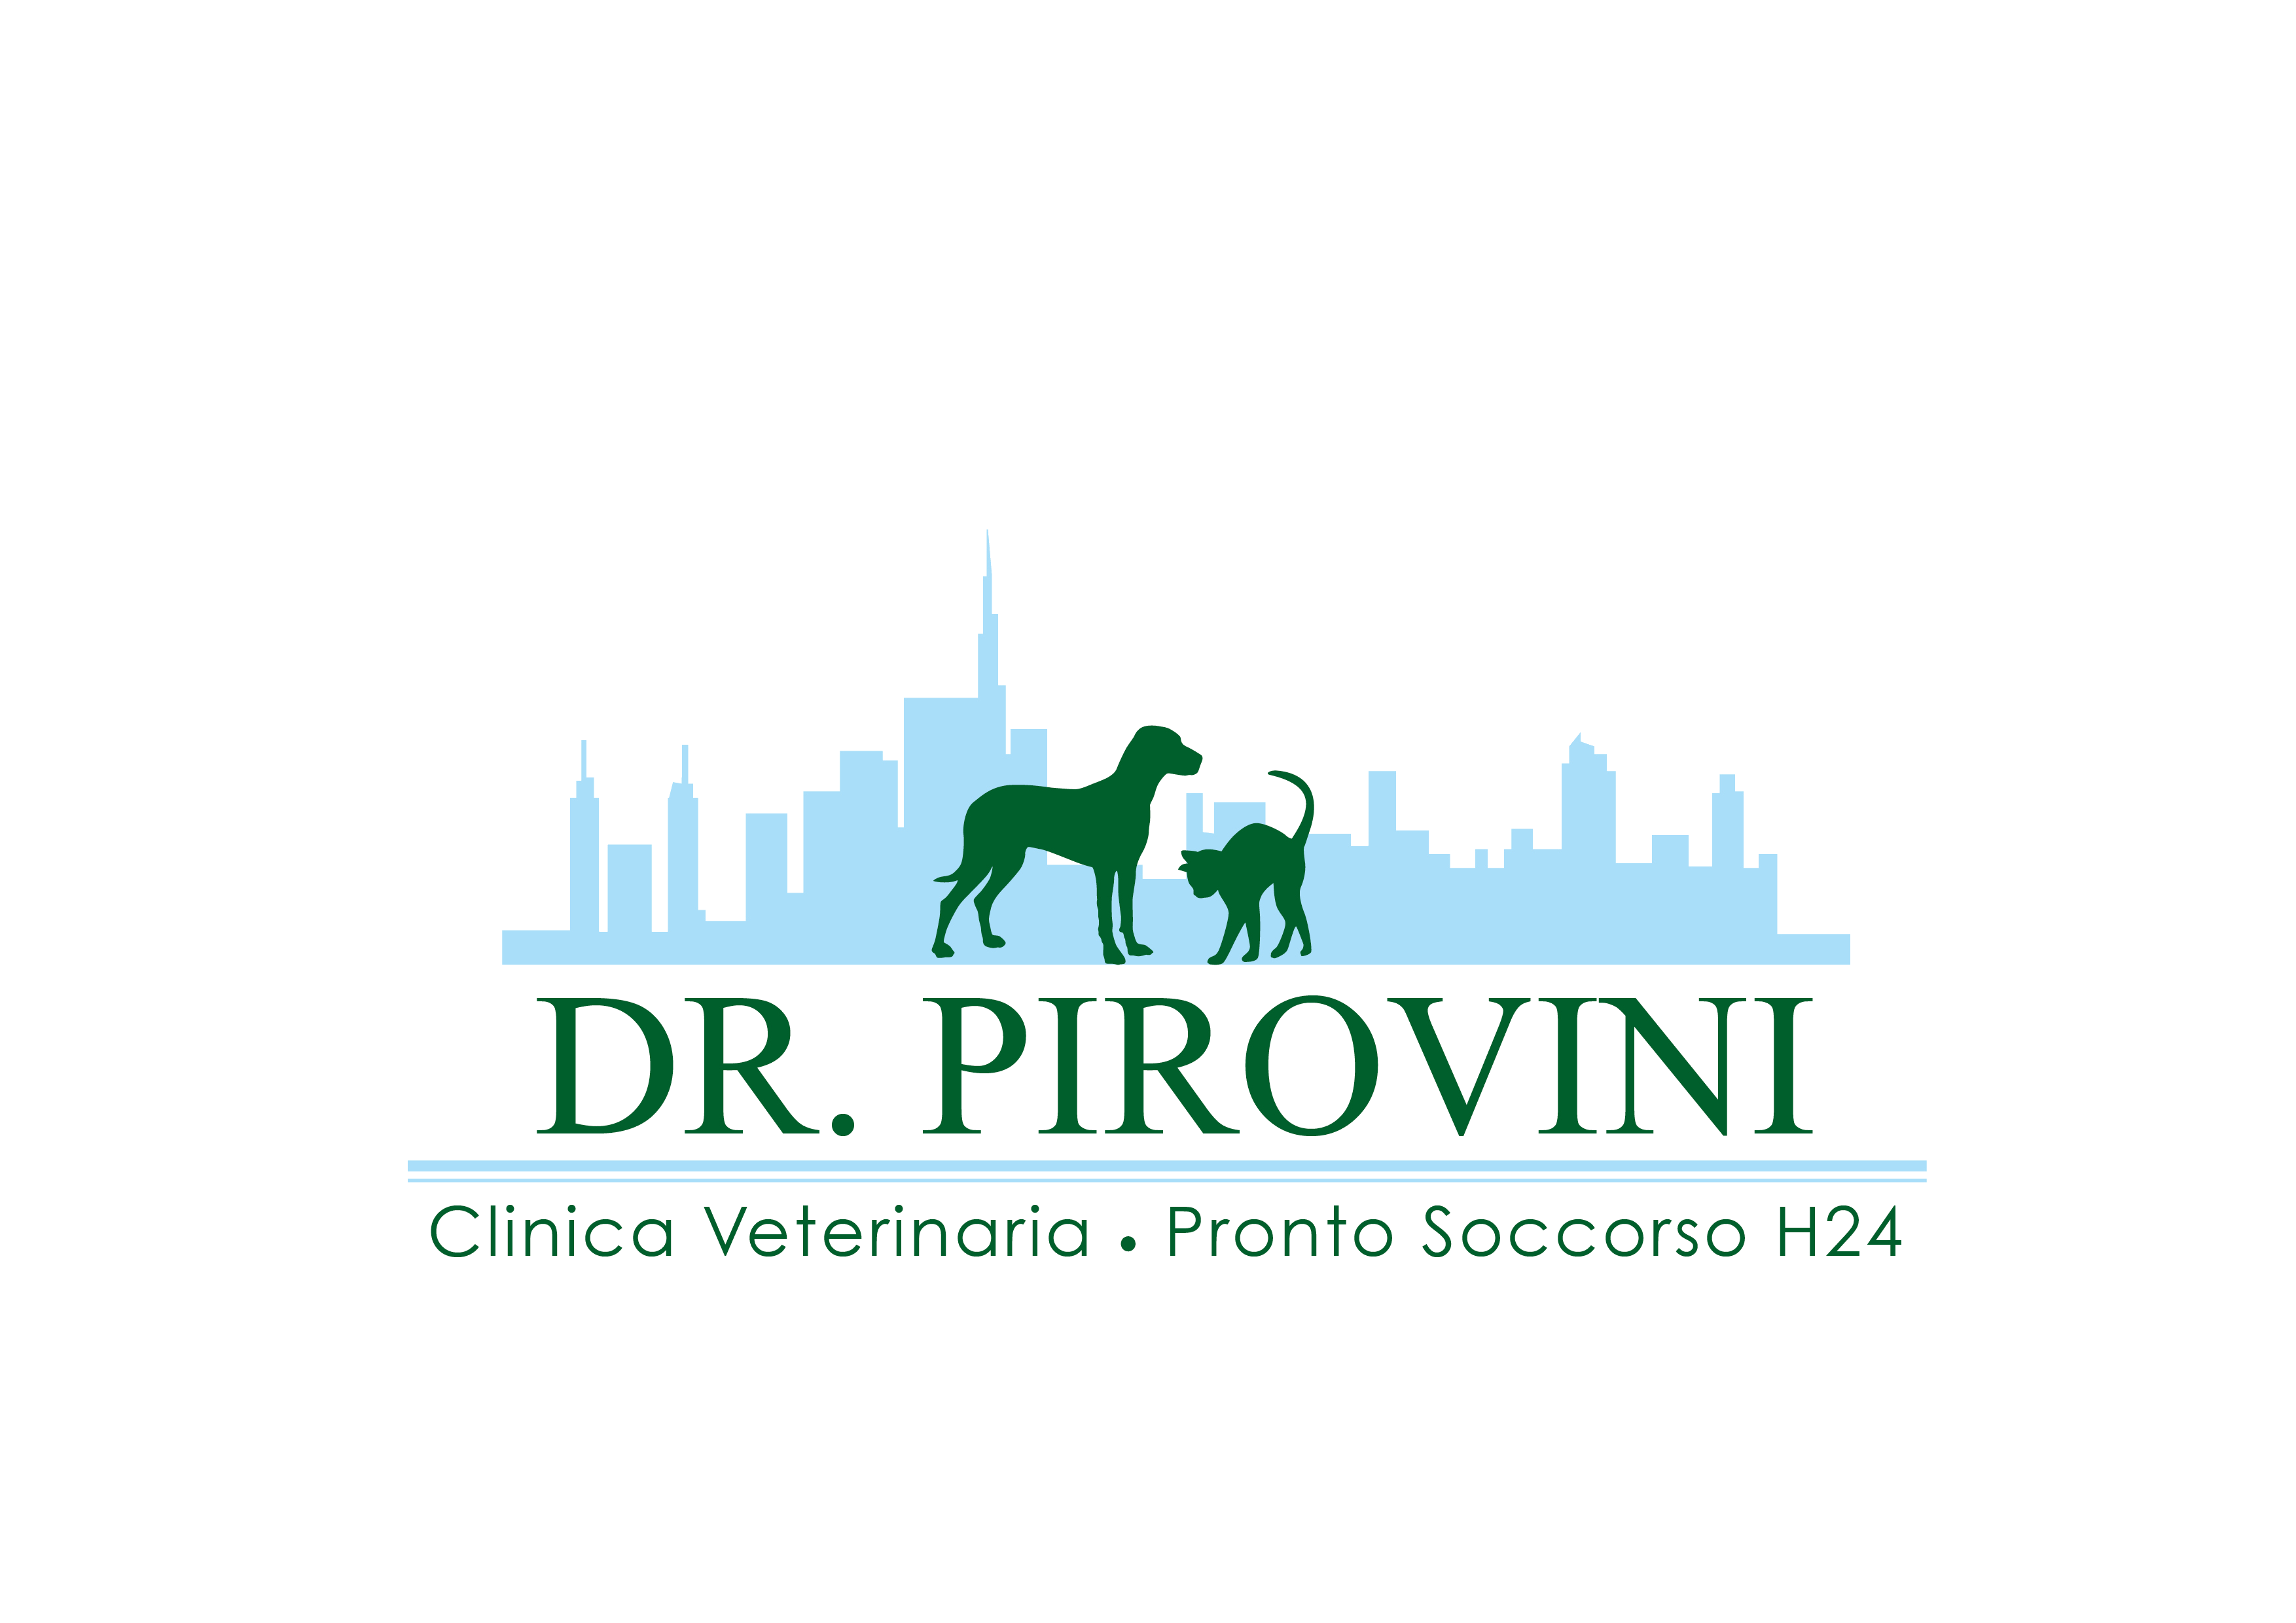 http://www.veterinariomilanogioia.it/wp-content/uploads/2015/11/LOGO.png